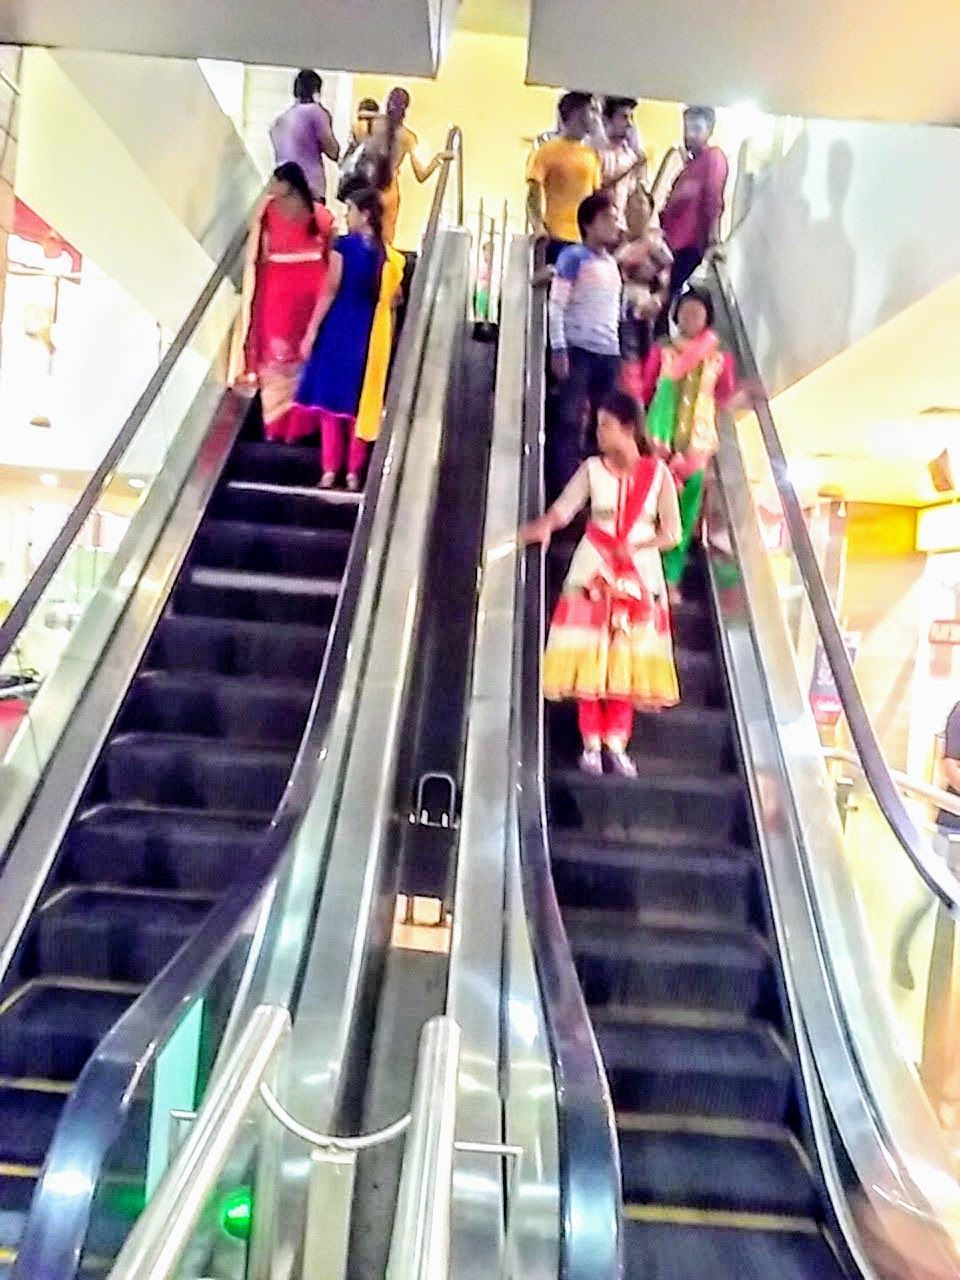 escalator, indoors, steps, steps and staircases, staircase, men, high angle view, modern, convenience, lifestyles, real people, leisure activity, women, casual clothing, large group of people, technology, retail, group of people, architecture, futuristic, day, adult, people, adults only